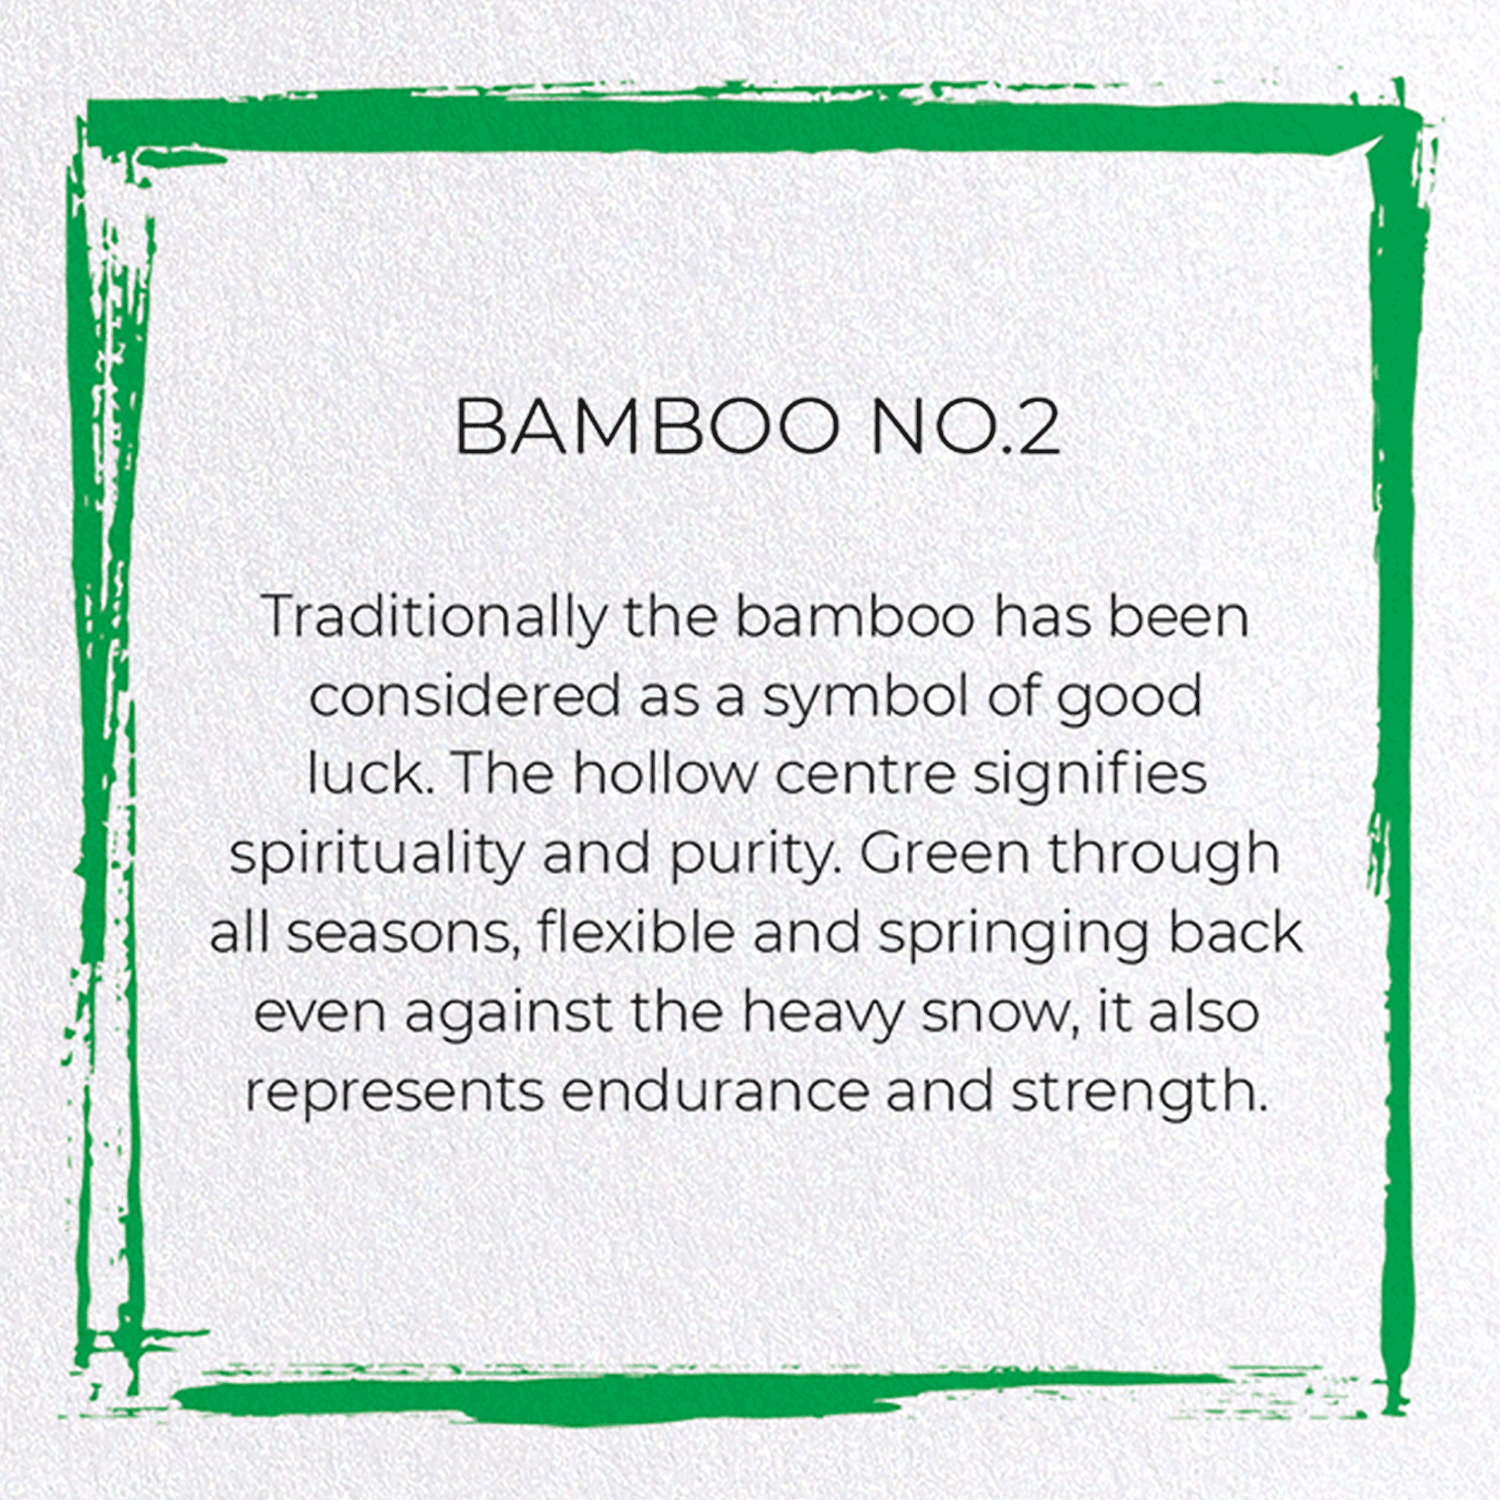 BAMBOO NO.2: 8xCards